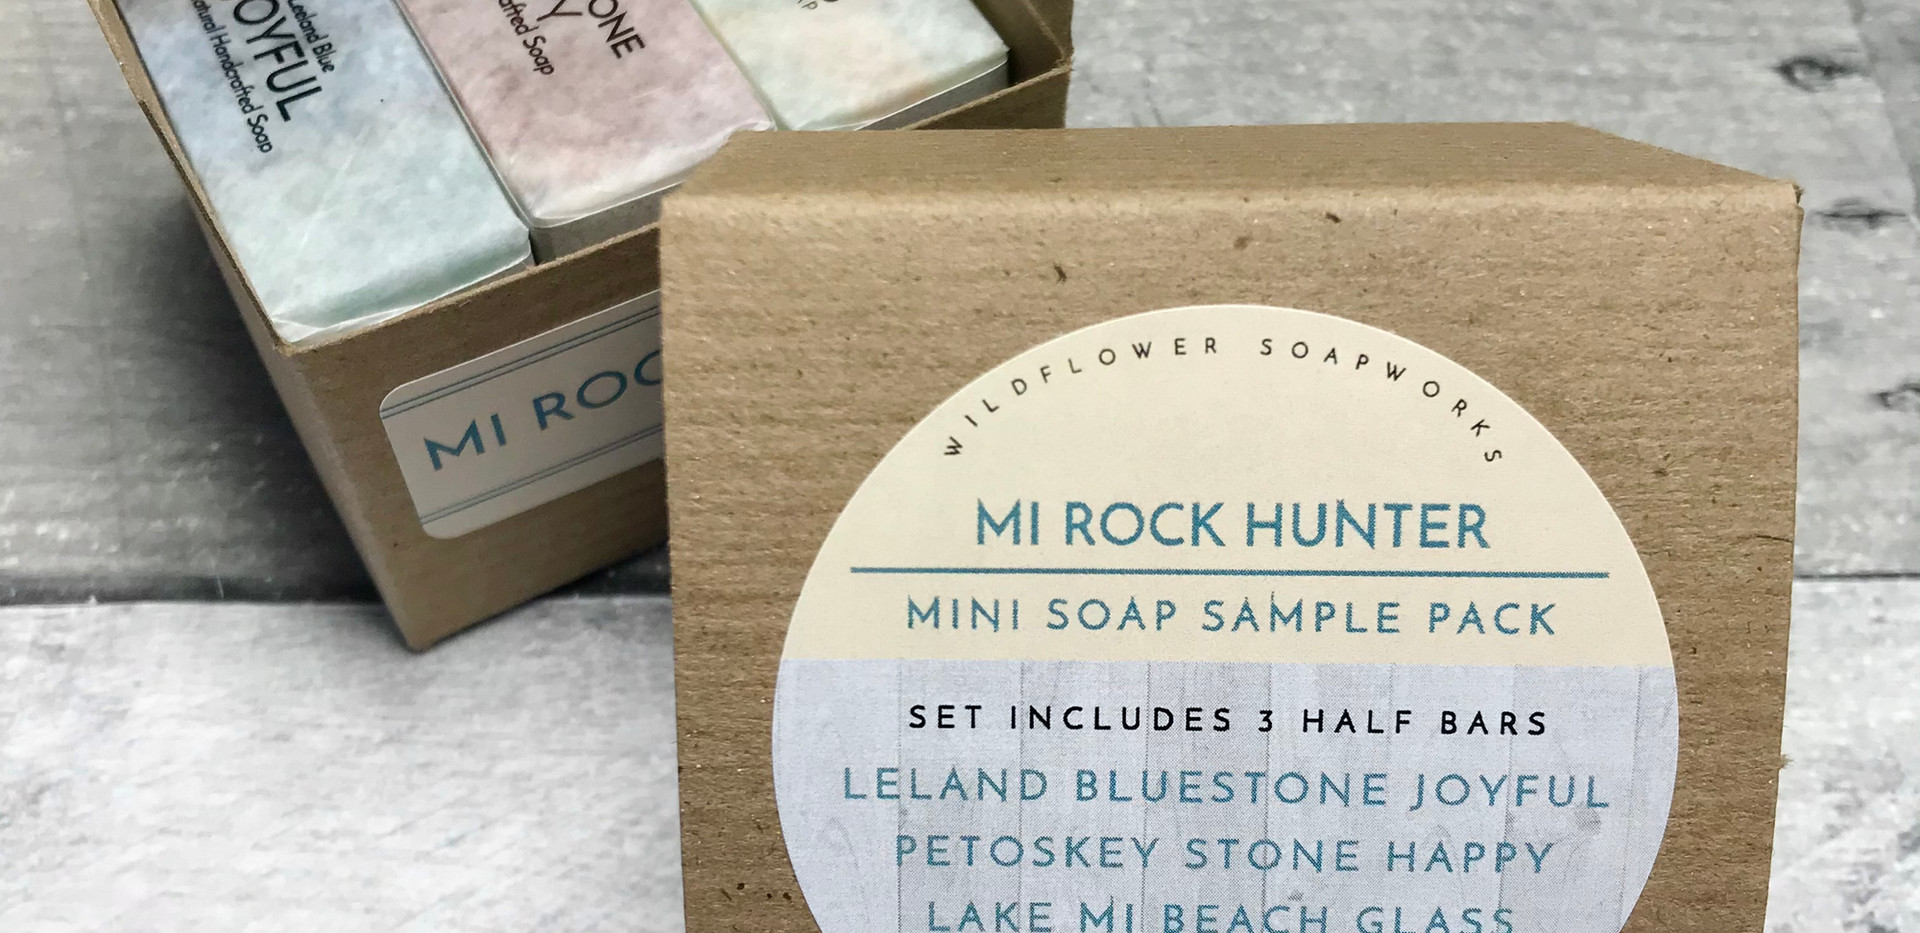 For the rock hunter in your life!